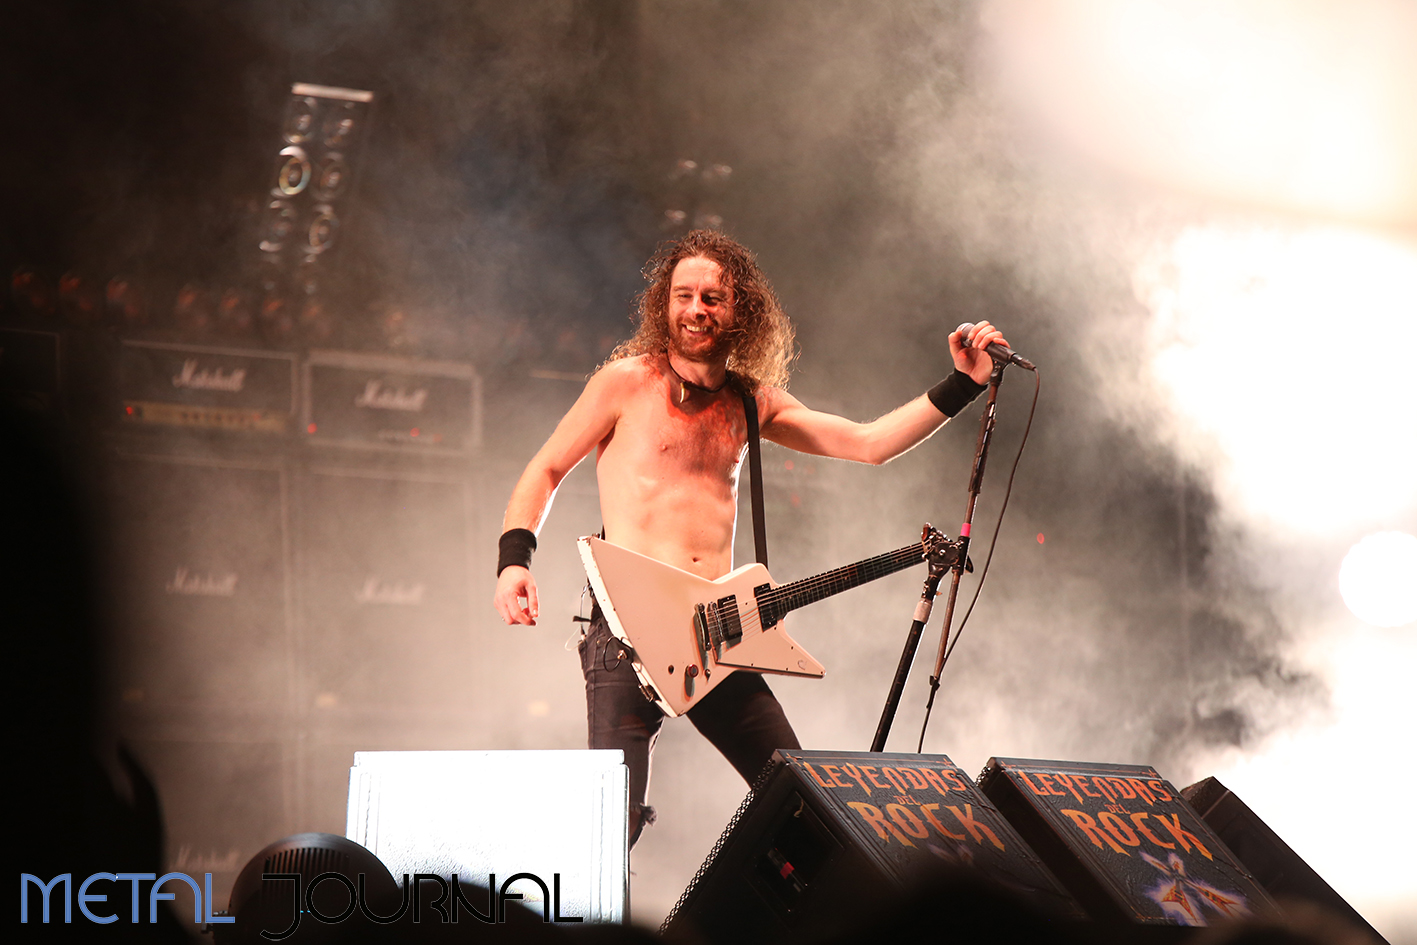 airbourne - leyendas del rock 2019 metal journal pic 5